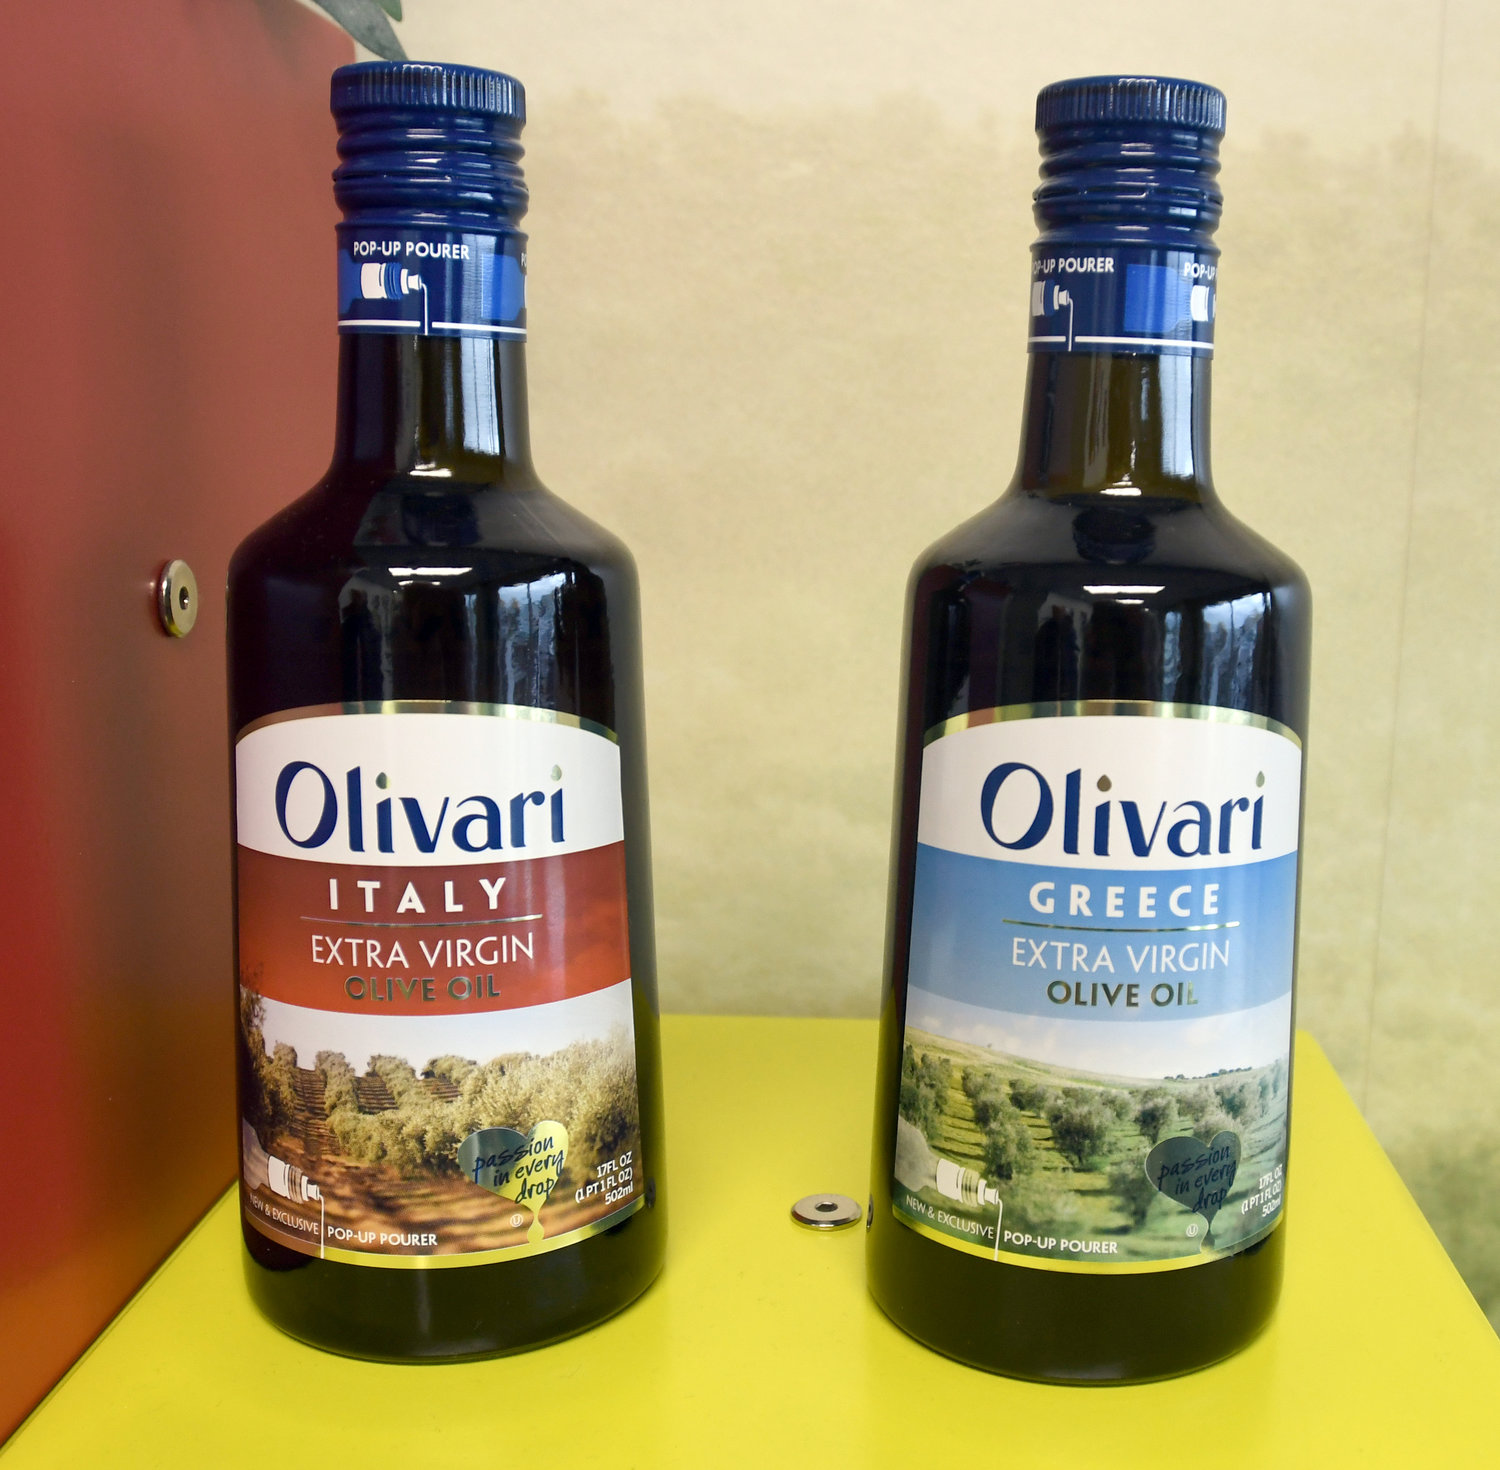 ON THE SHELVES — Sovena USA Inc. products under the company's Olivari brand are on display at its facility at 1 Olive Grove Street at Griffiss business park.